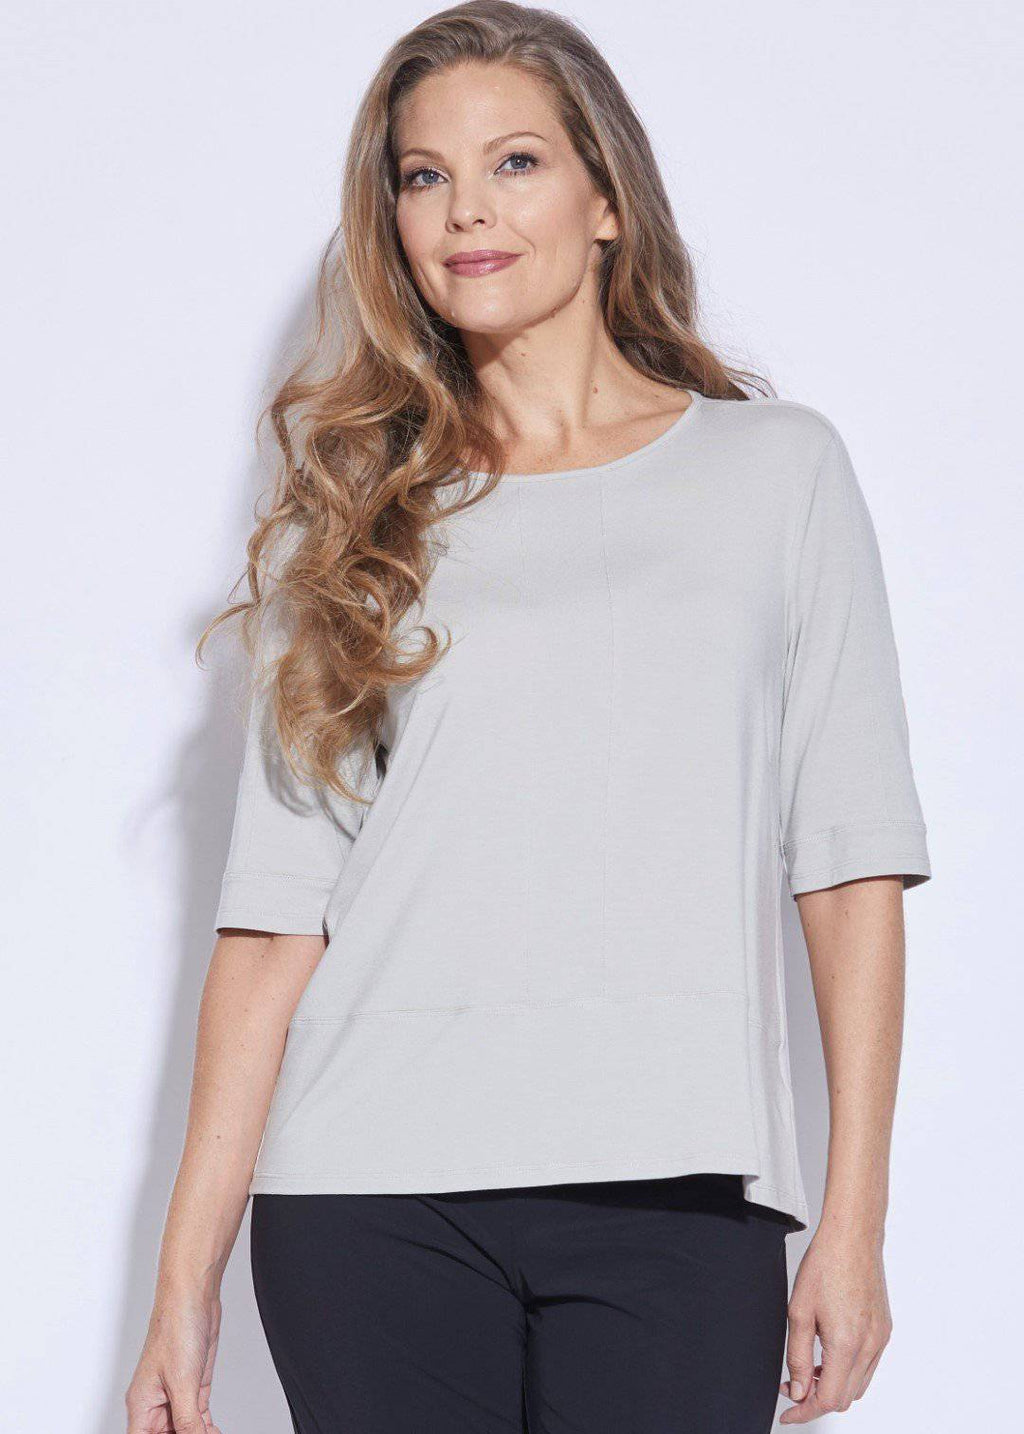 PAULA RYAN ESSENTIALS Panelled Half Sleeve Top - MicroModal - Paula Ryan